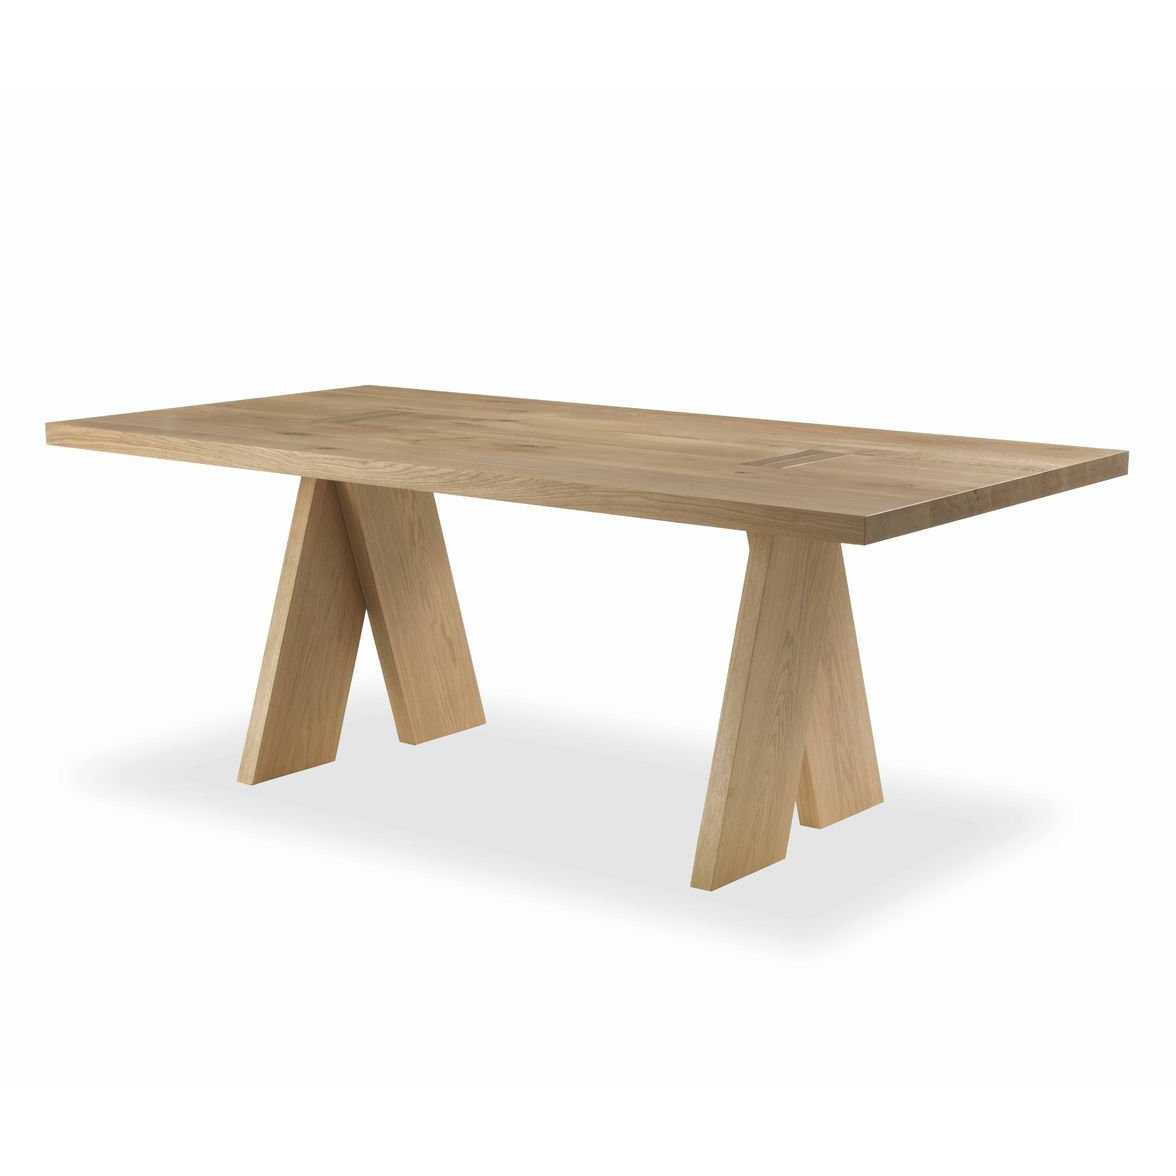 Jedi dining table from Riva 1920